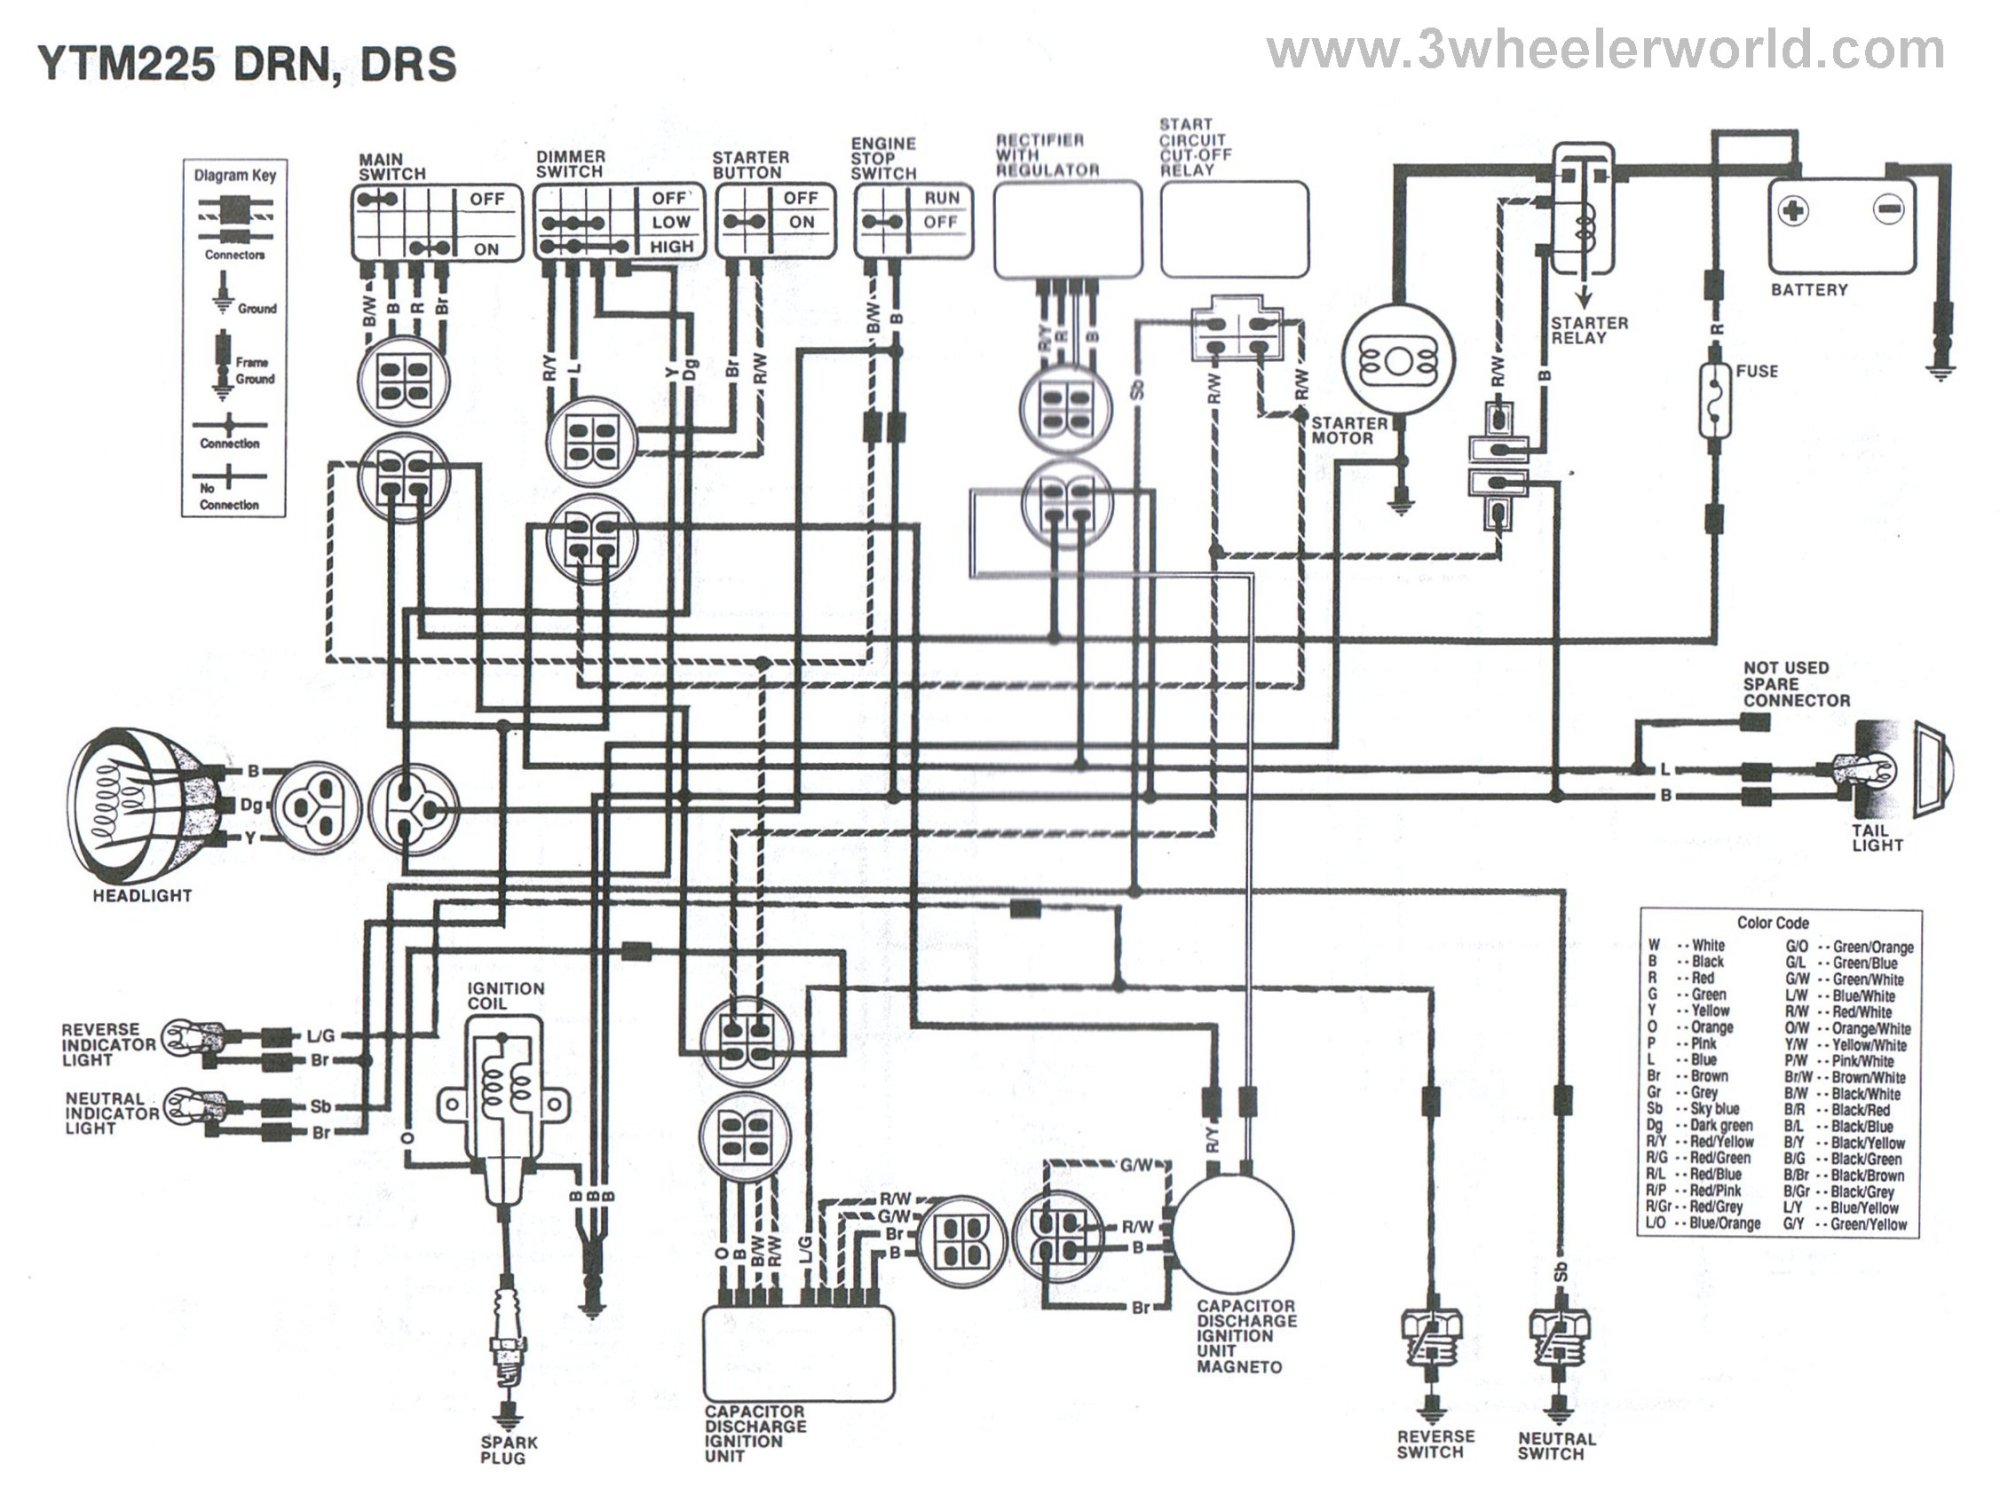 hight resolution of tags m2 freightliner ac wiring diagram 2005 freightliner ac wiring diagram freightliner air conditioning unit system diagram freightliner m2 dash wiring